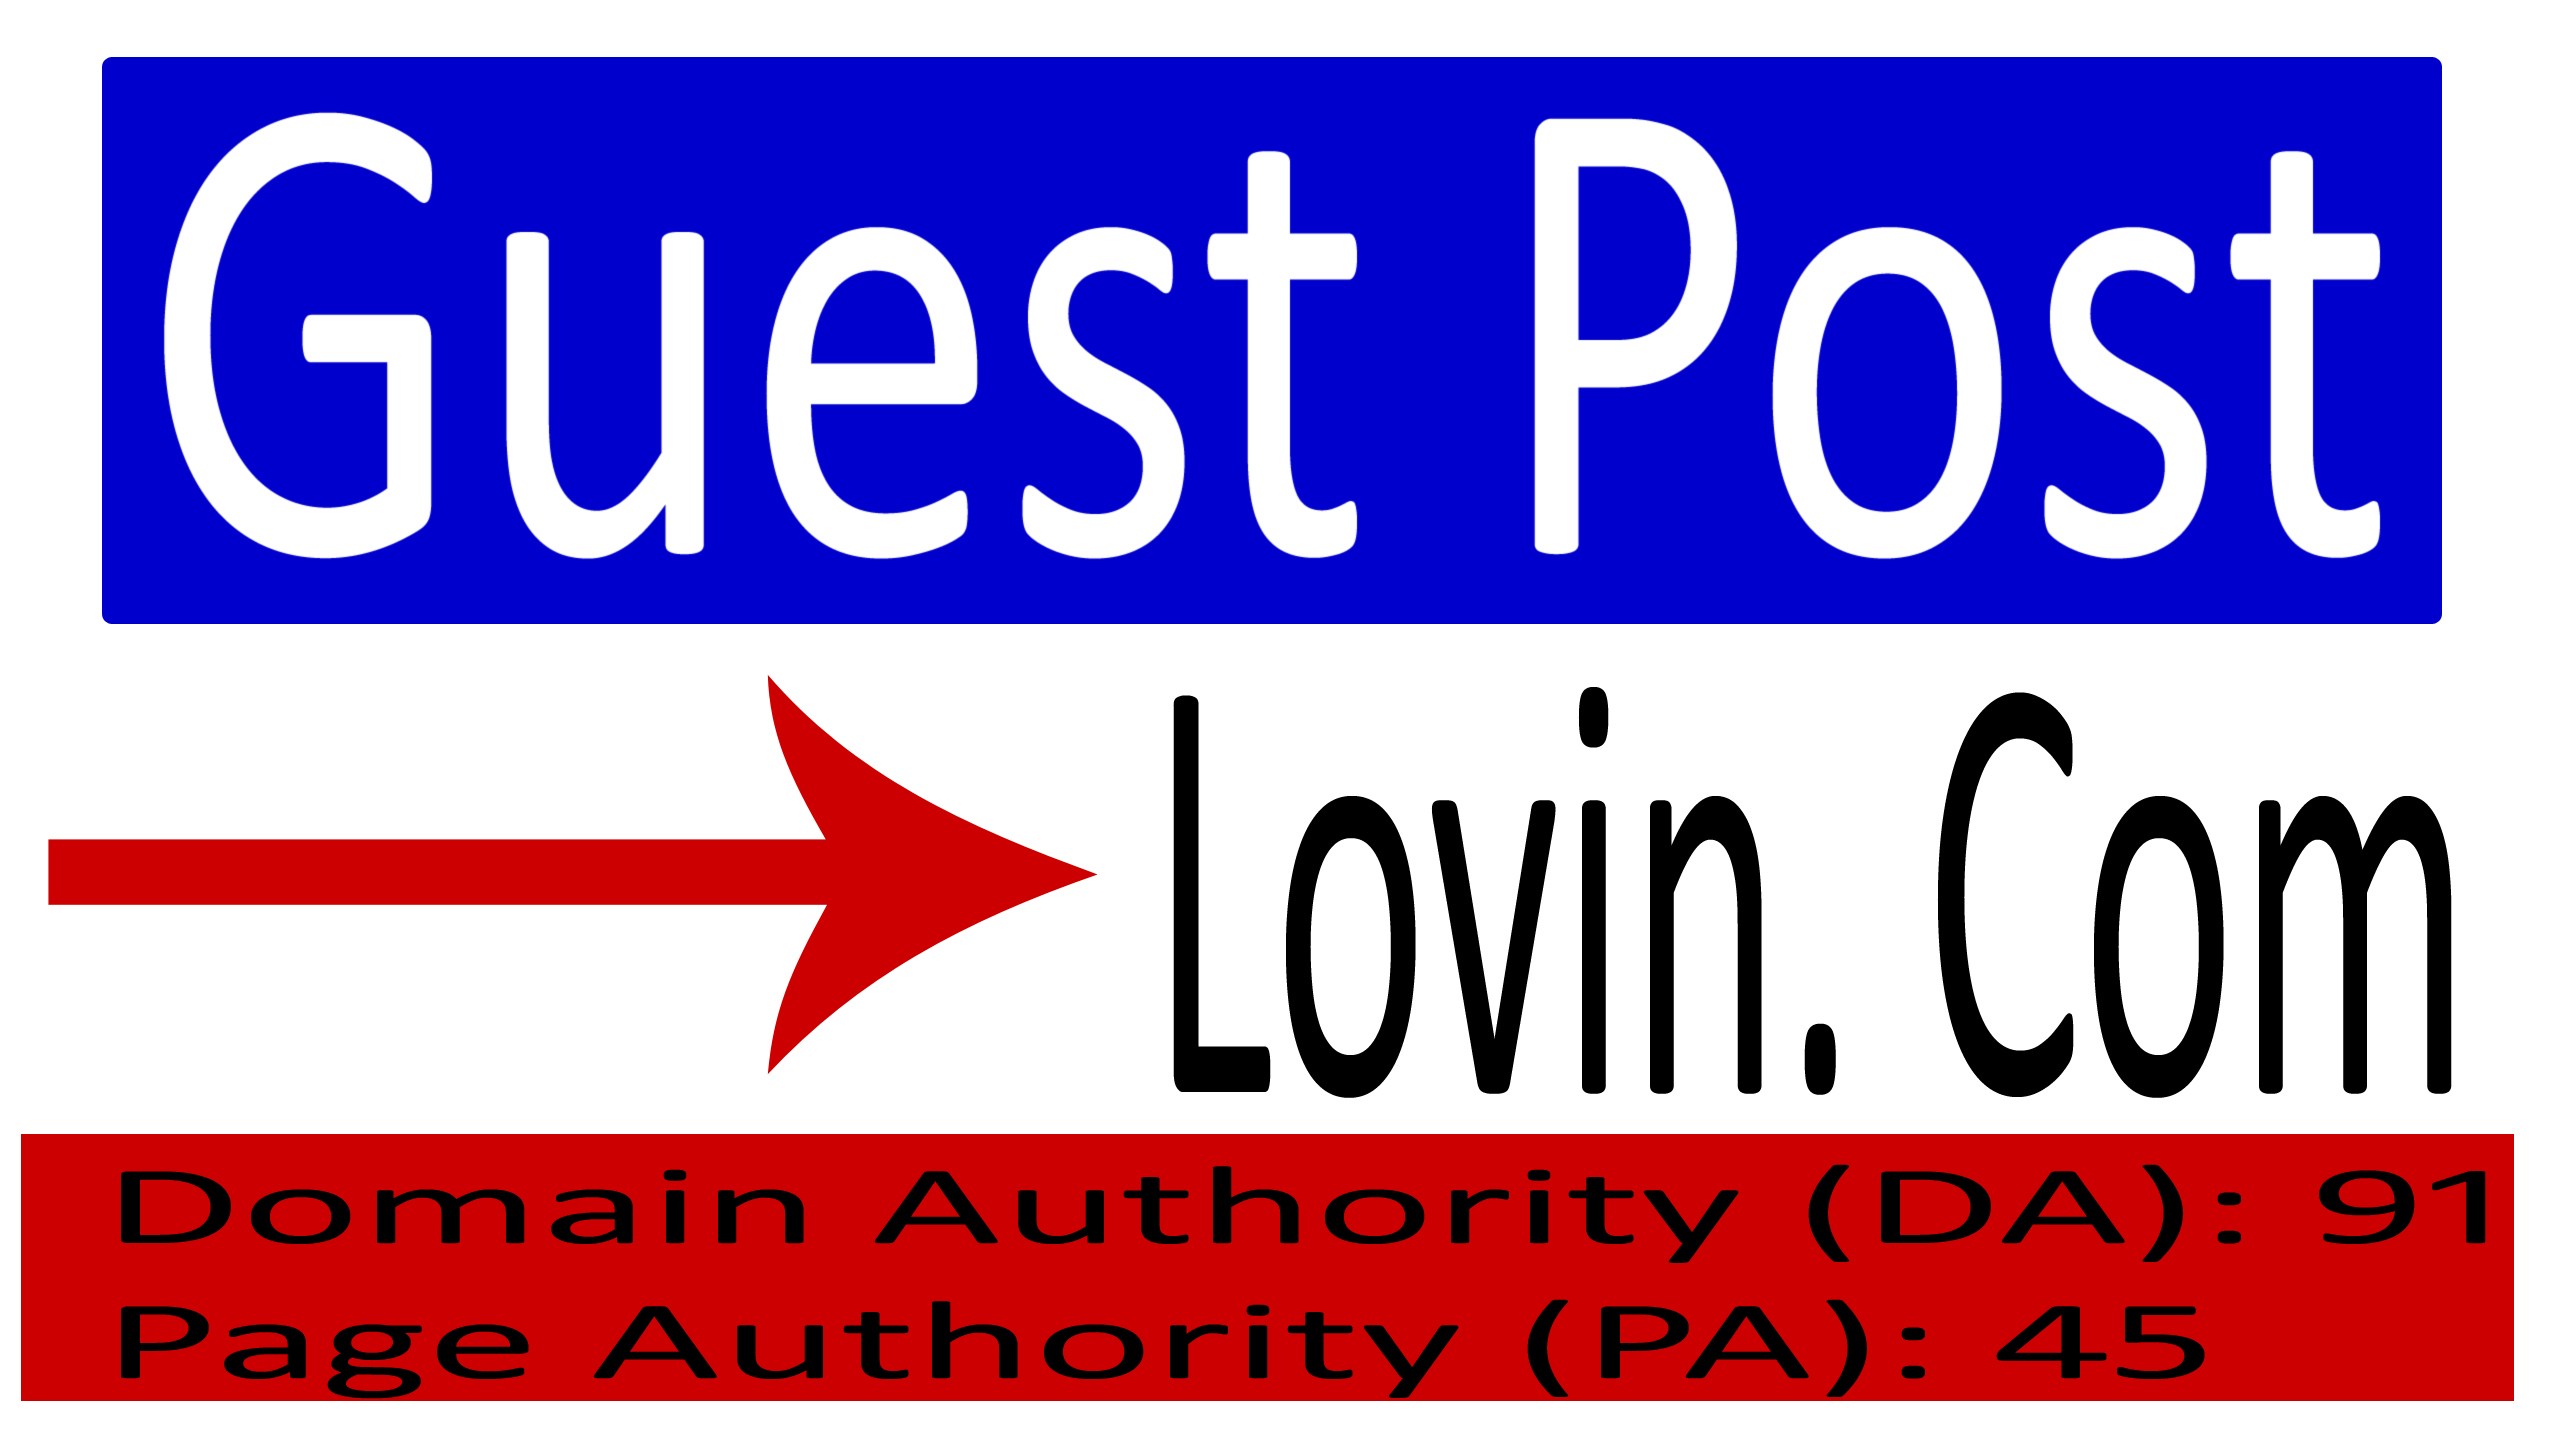 Create and And Publish Guest Post On Blog Lovin with best quality